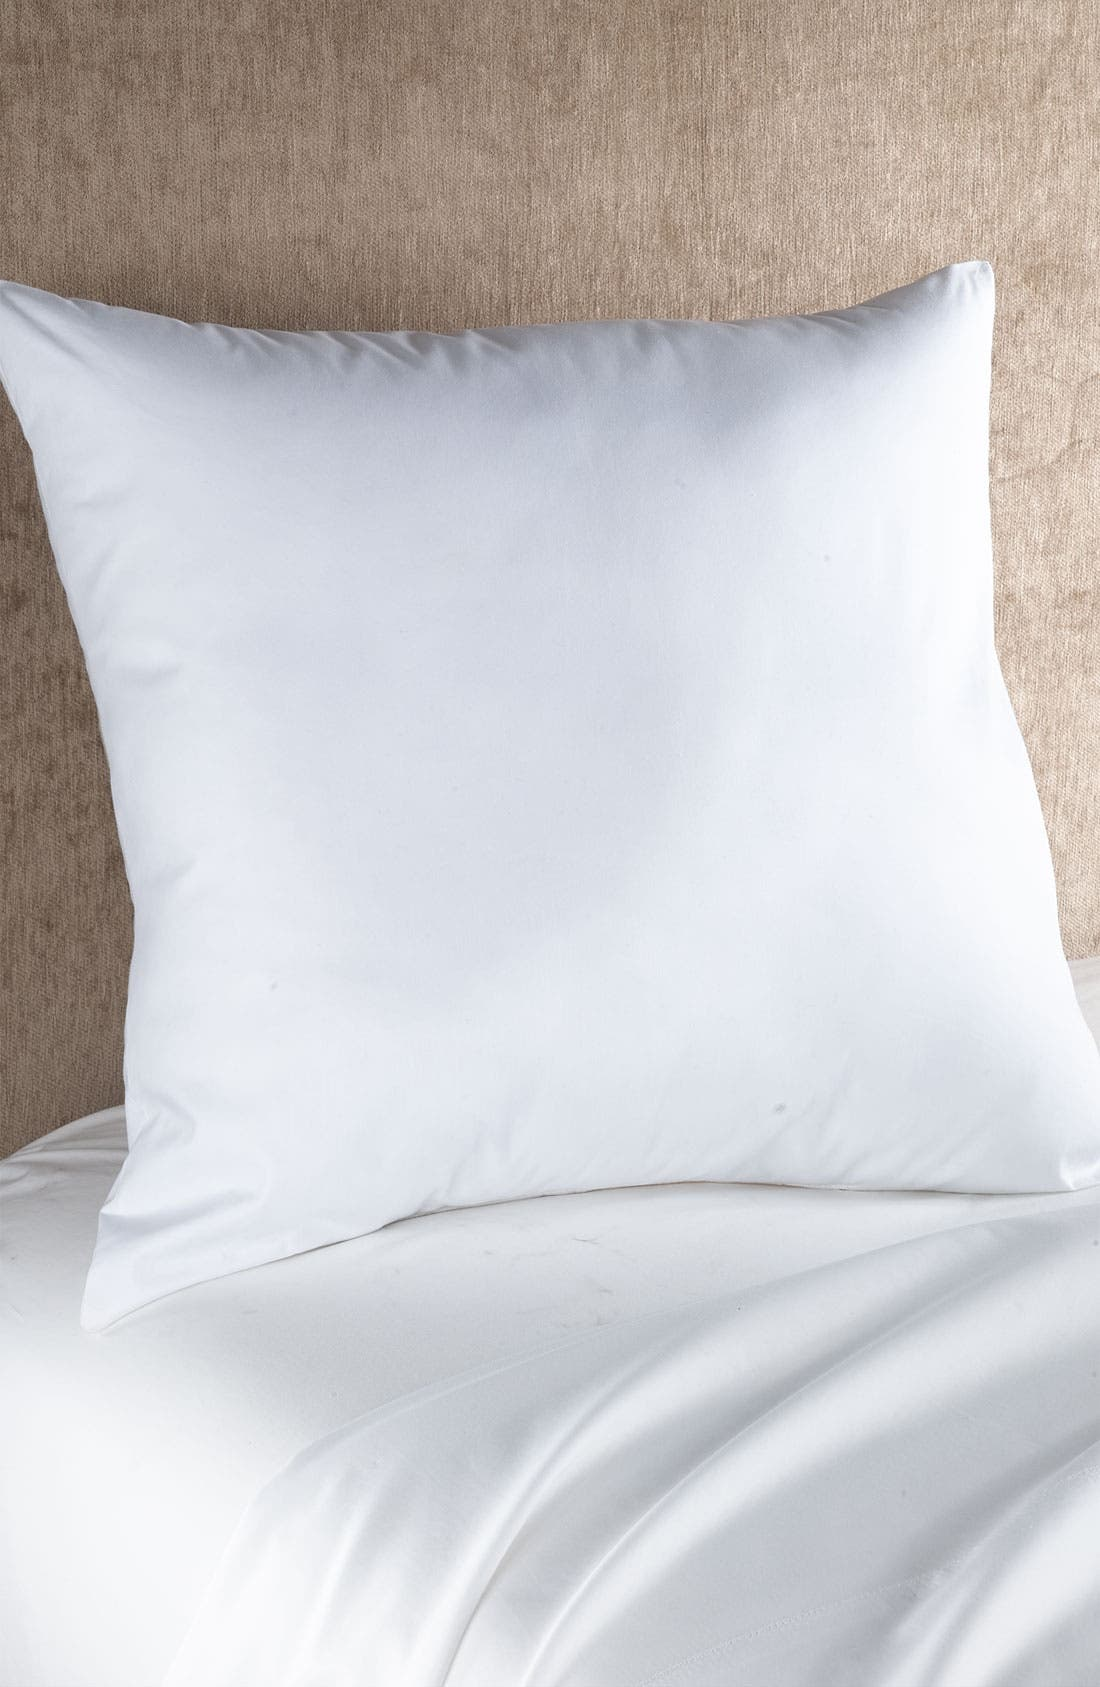 Main Image - Nordstrom at Home Down Euro Pillow Insert